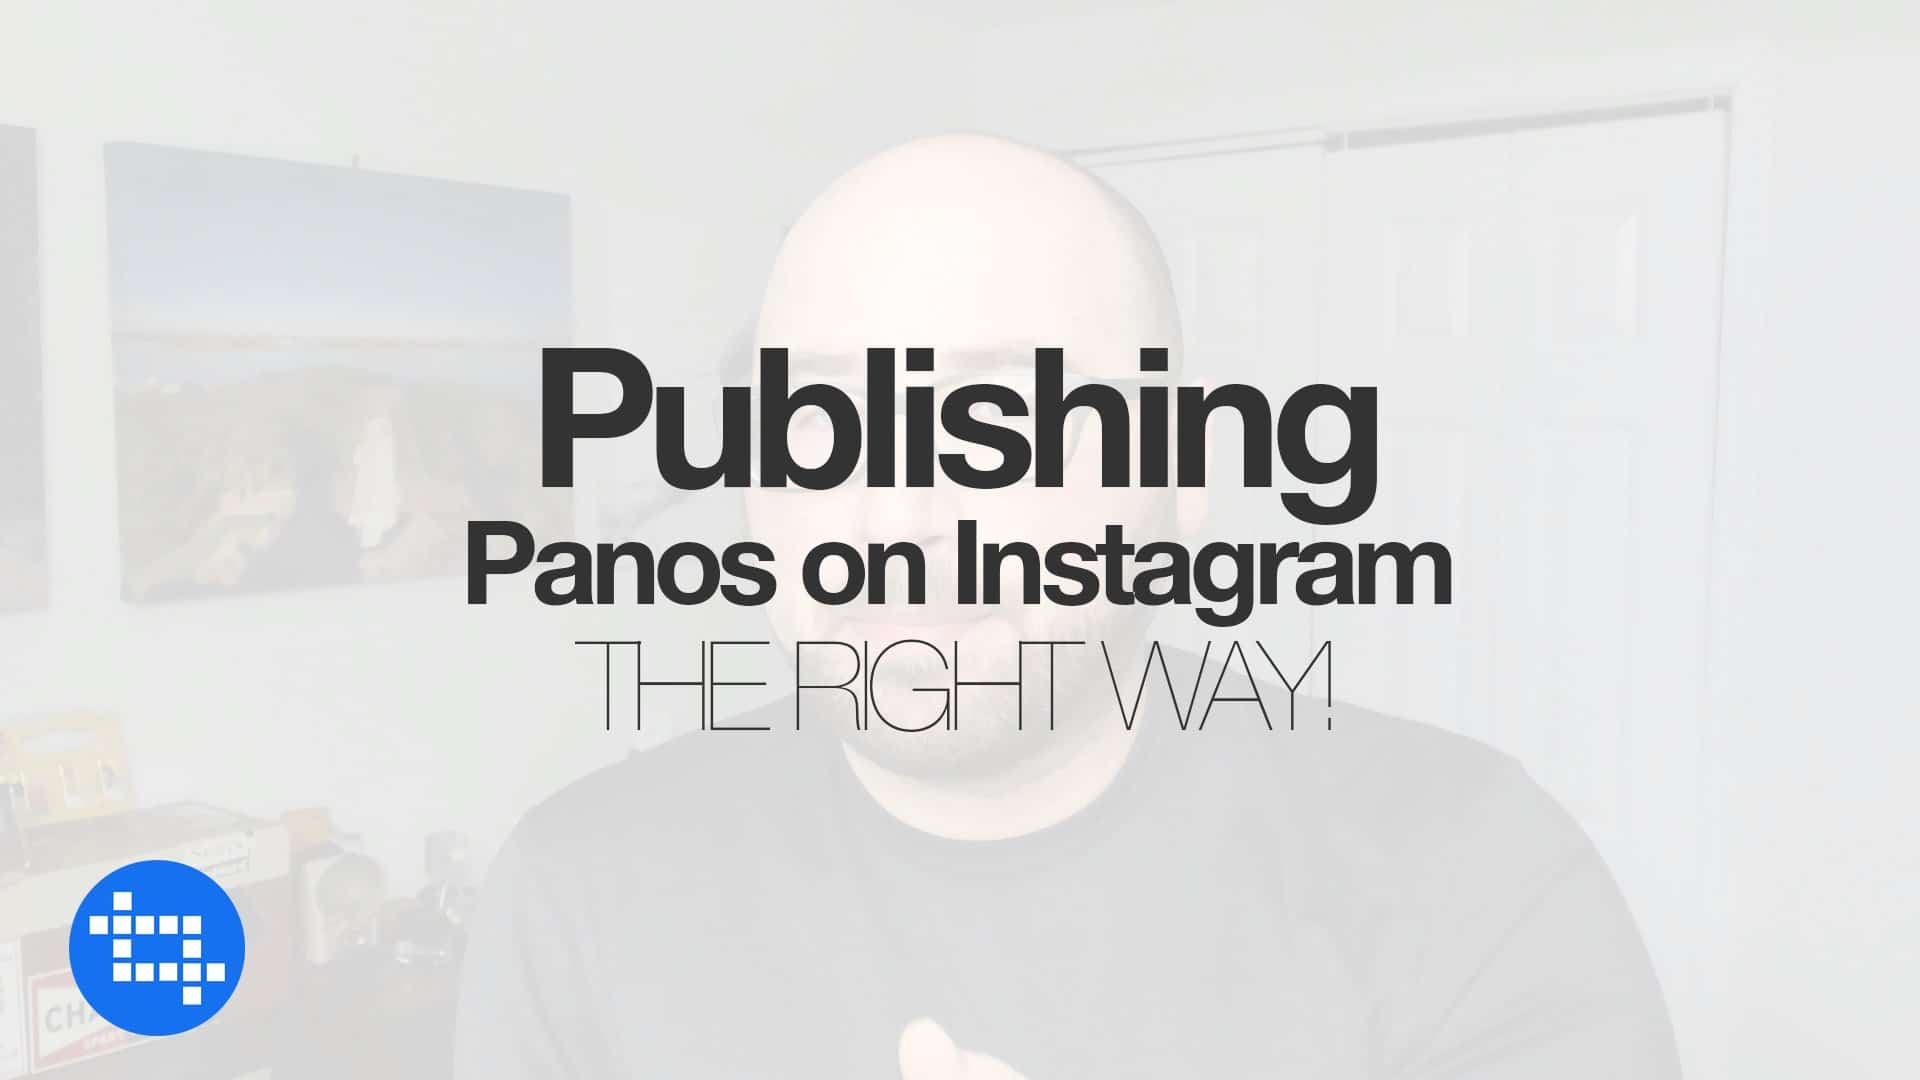 The Best Way to Publish Panoramic Photographs on Instagram